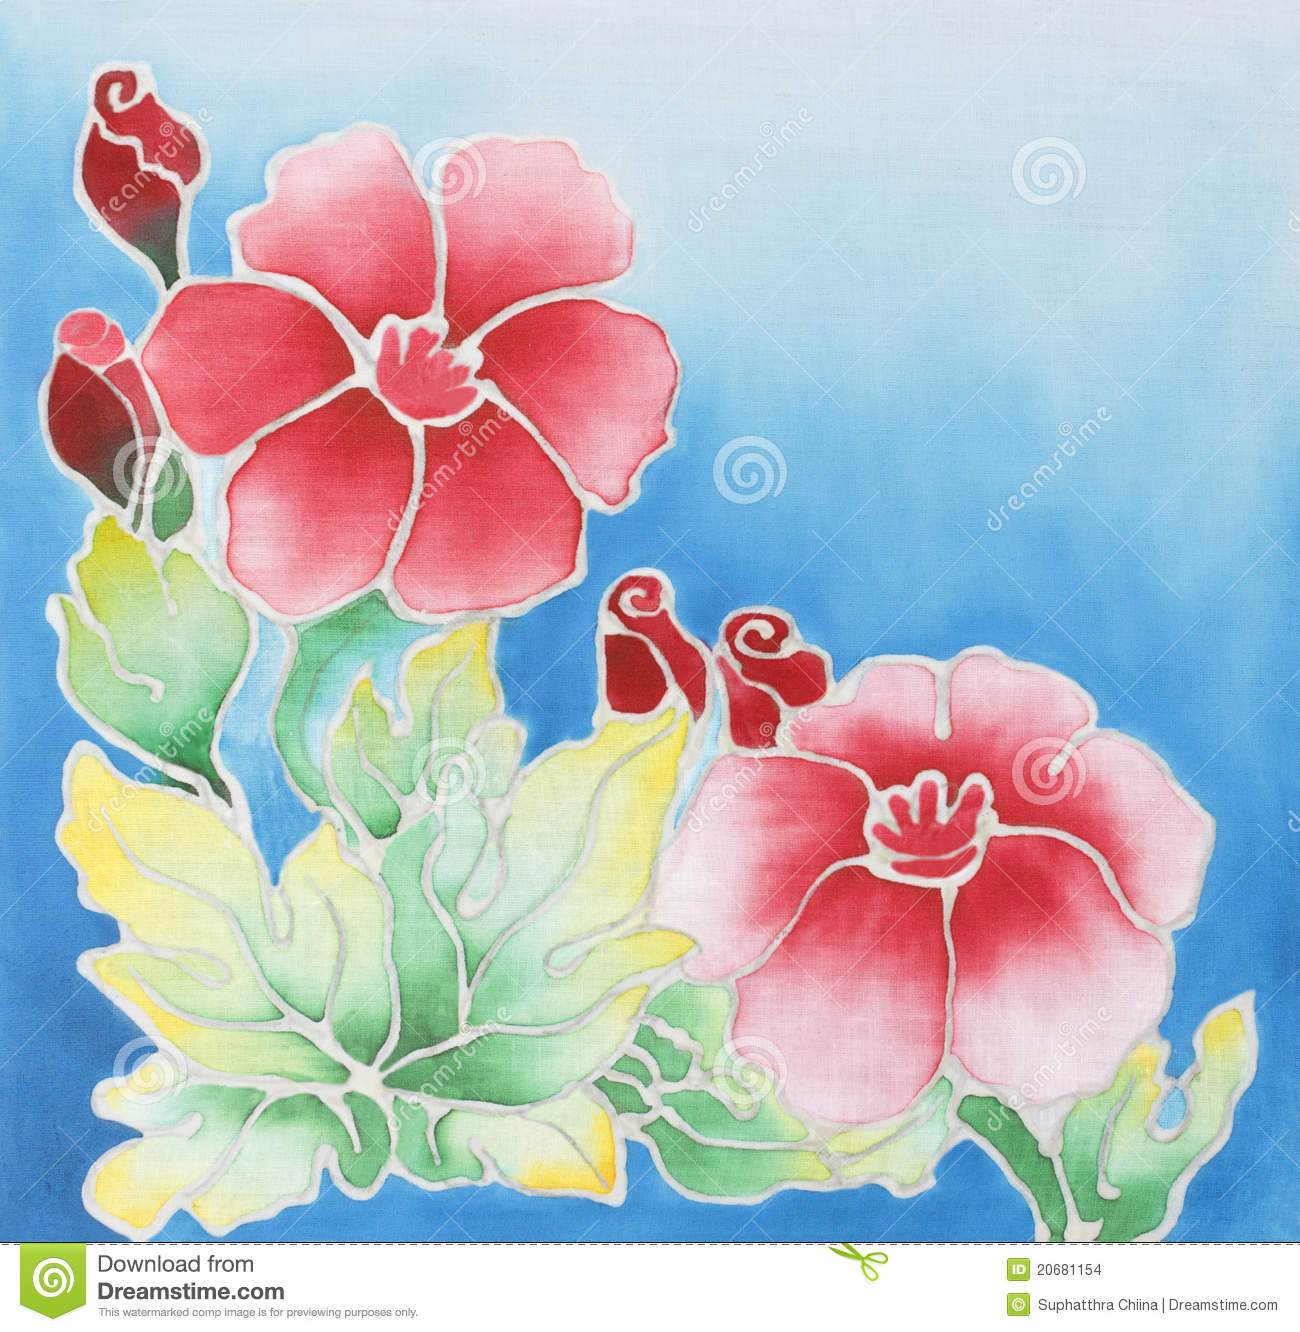 Batik Design Stock Illustration. Illustration Of Cotton